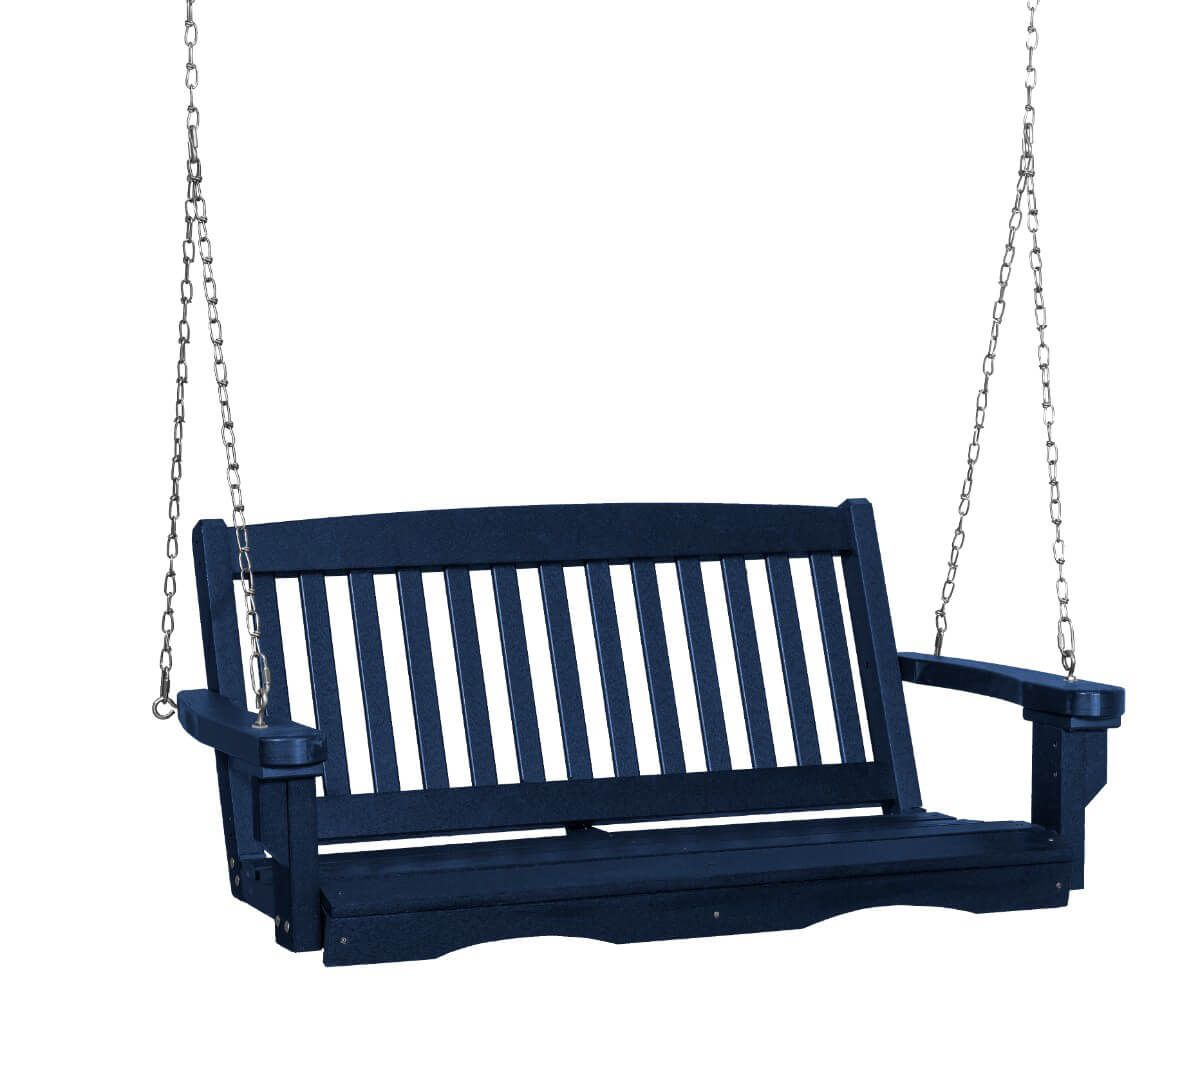 Patriot Blue Aniva Porch Swing